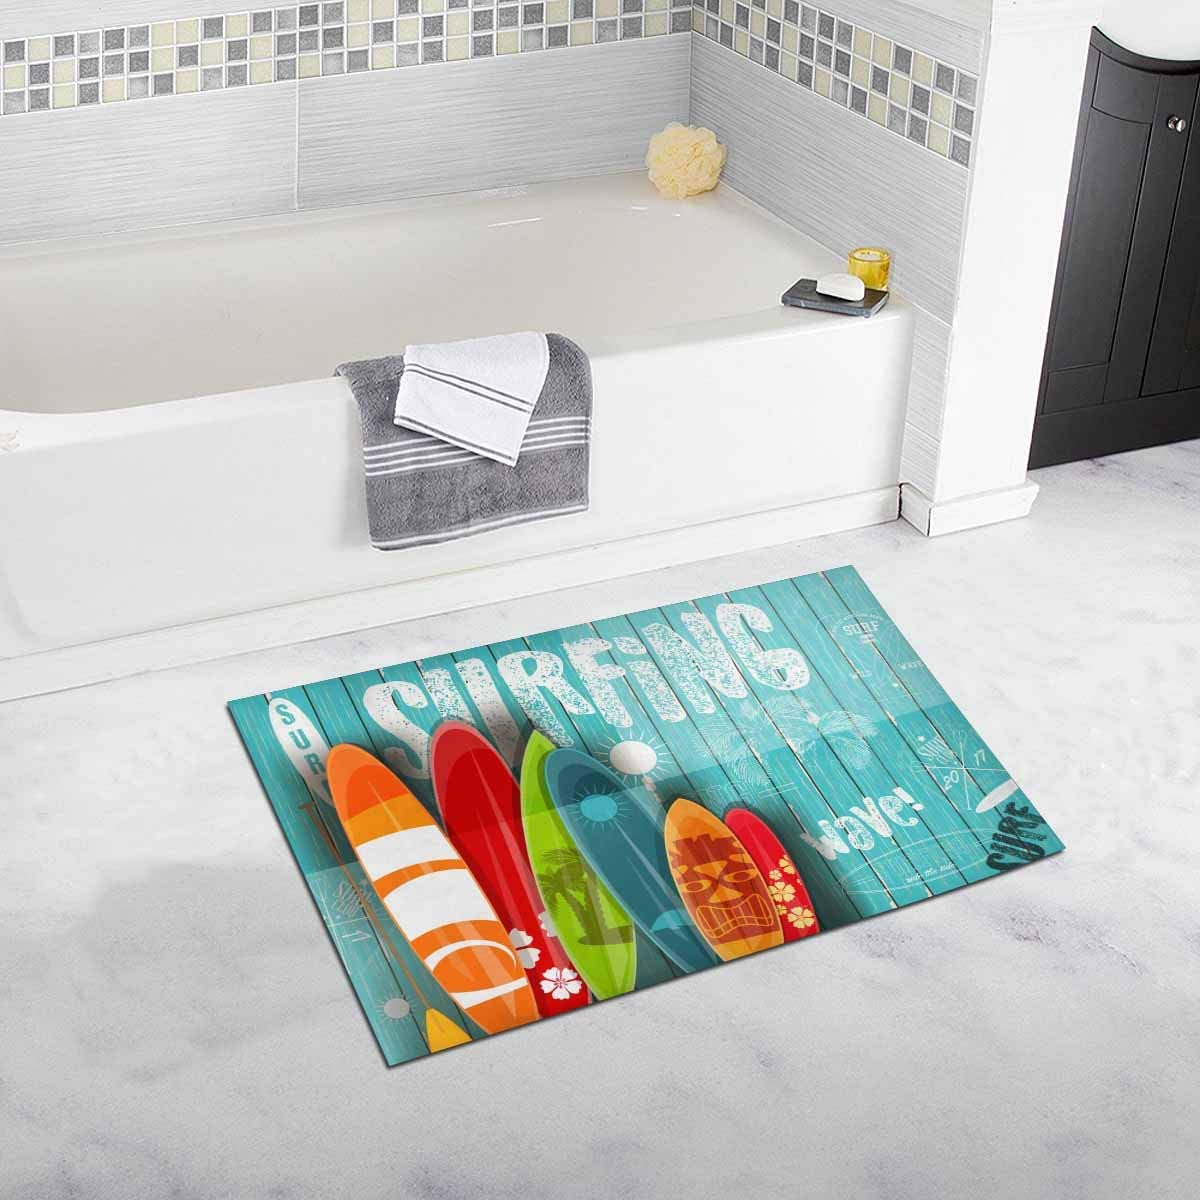 INTERESTPRINT Vintage Surfing Surfboards with Different Designs and Sizes on Blue Wooden Home Decor Non Slip Bath Rug Set Absorbent Floor Mats for Bathroom Tub Bedroom 20 x 32 Inches